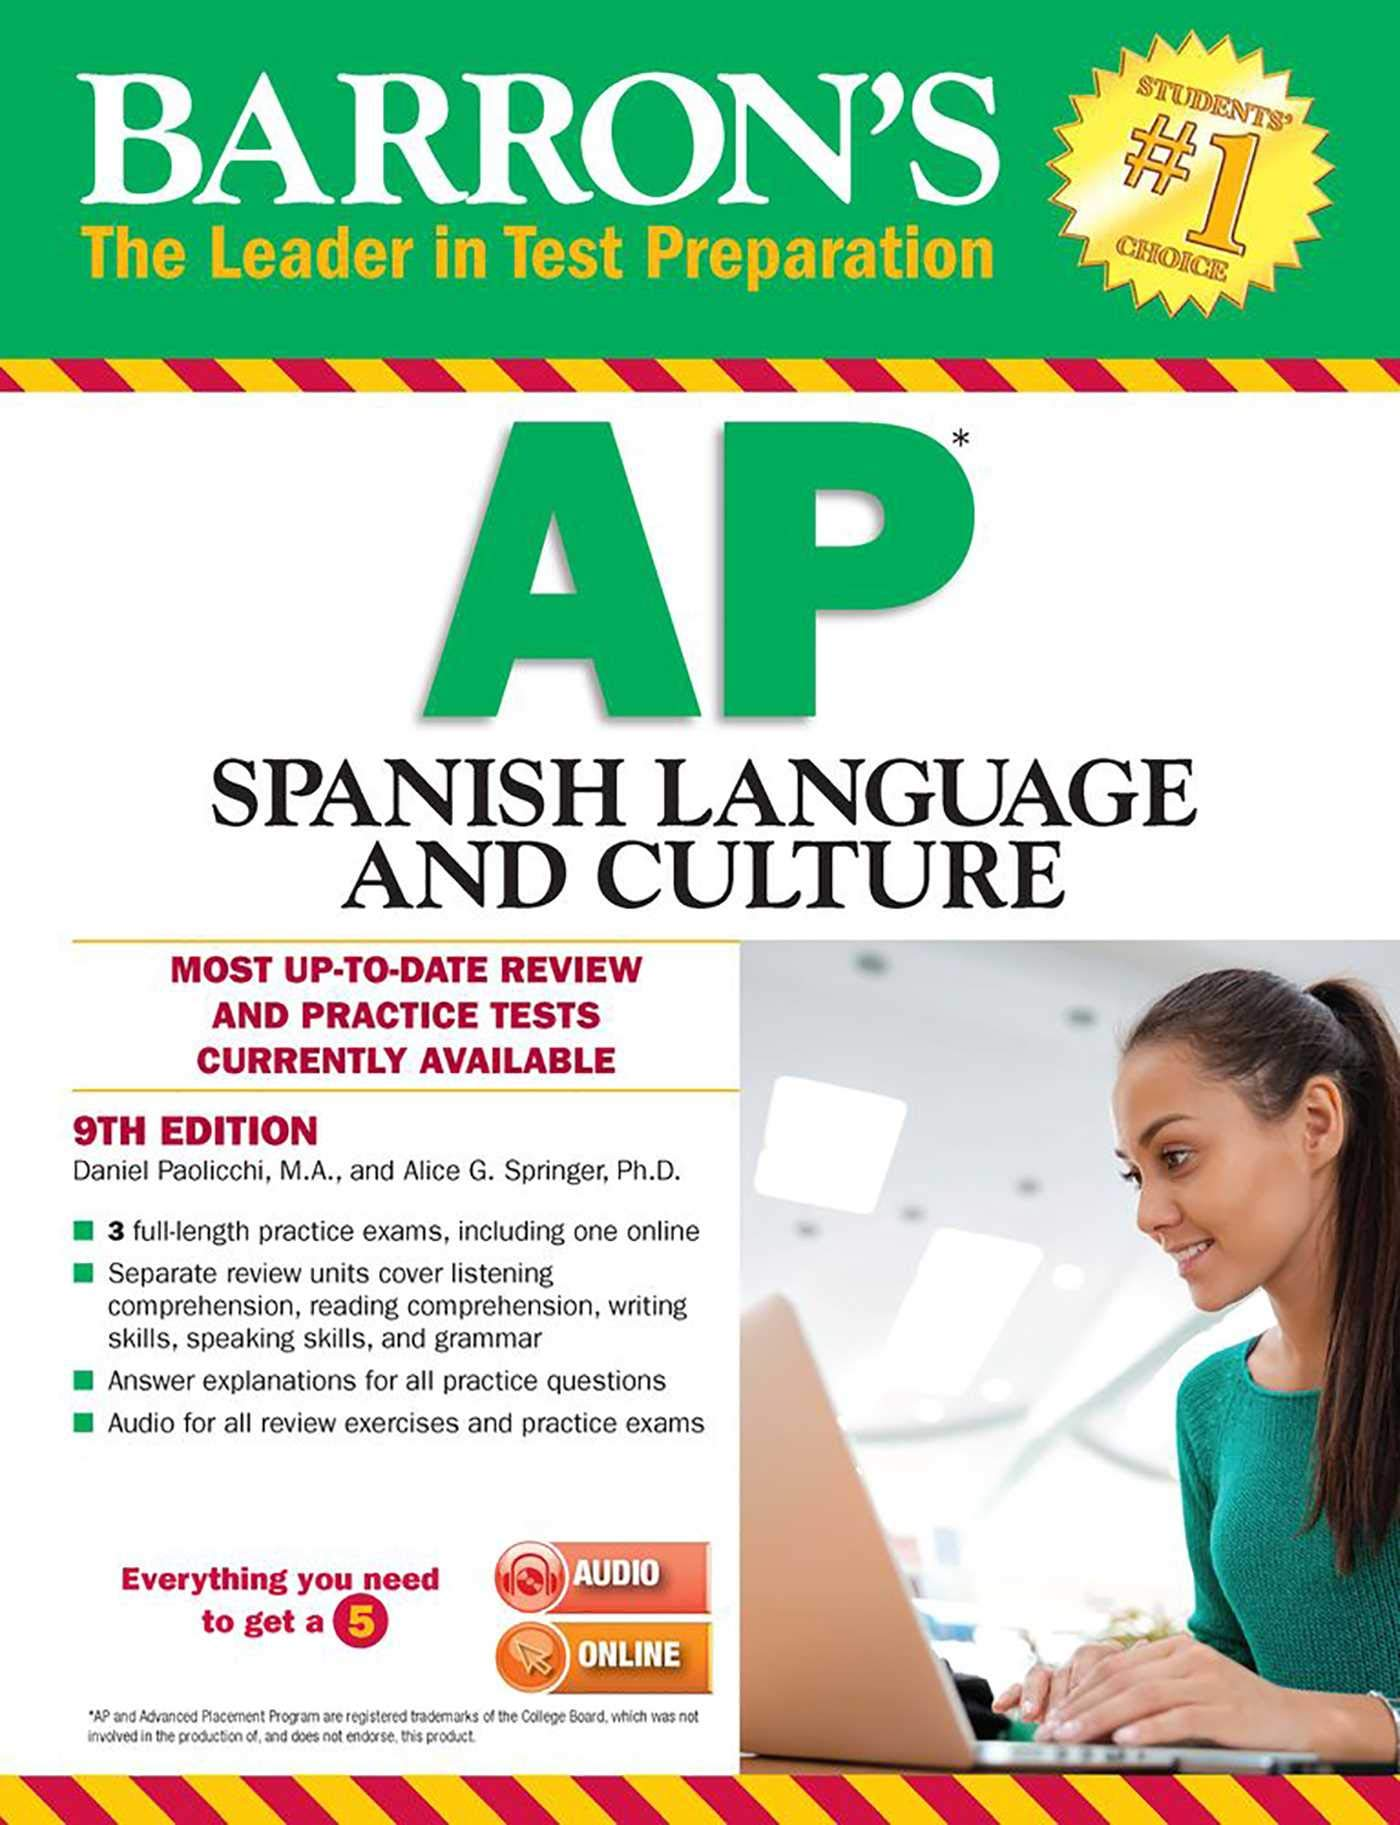 Barron's AP Spanish Language and Culture with MP3 CD, 9th Edition by Barron s Educational Series